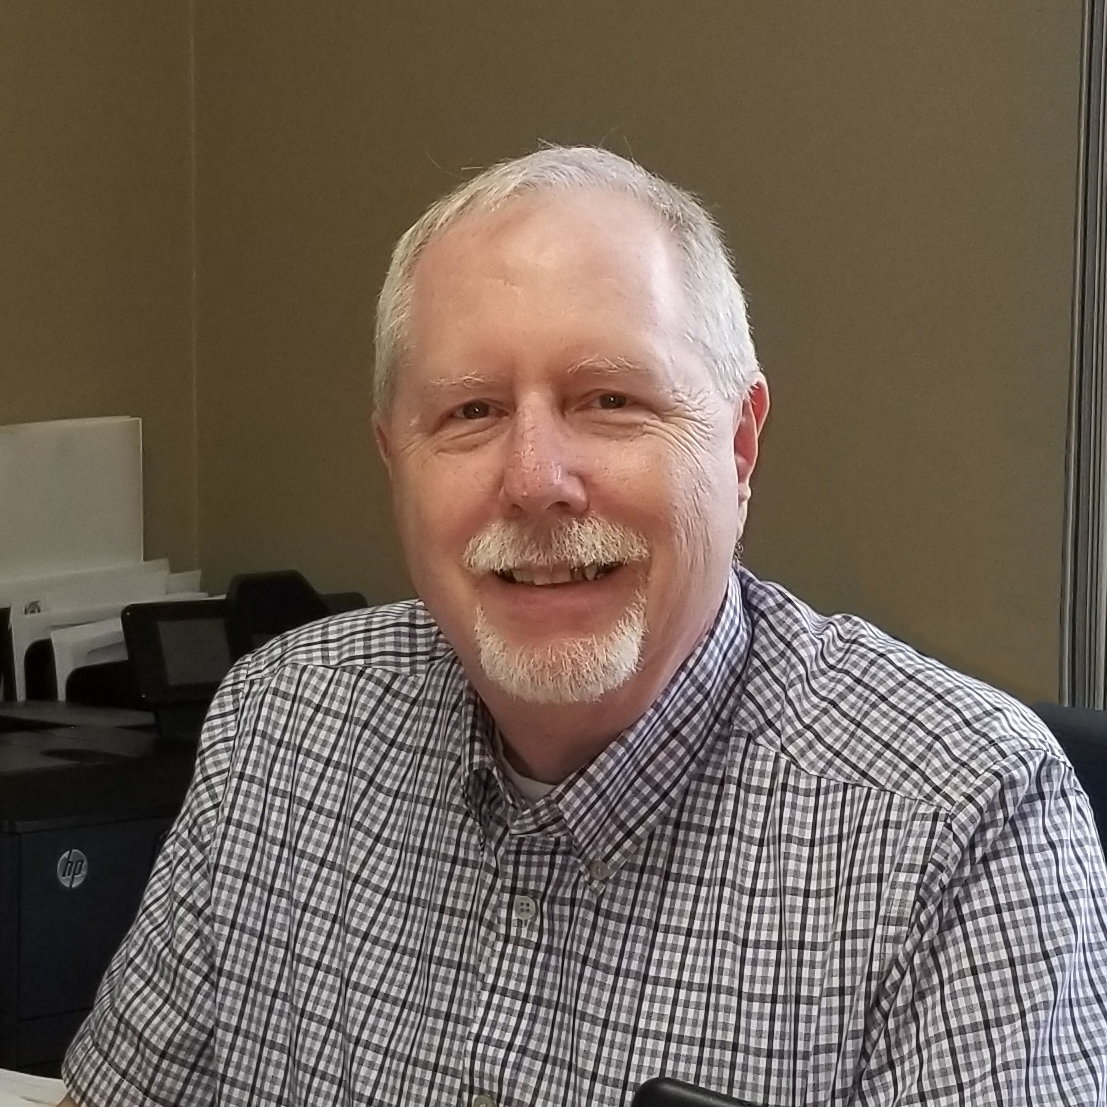 Steve O'Connell - Finance Managersoconnell@holyfamilyretreat.org860.760.9707